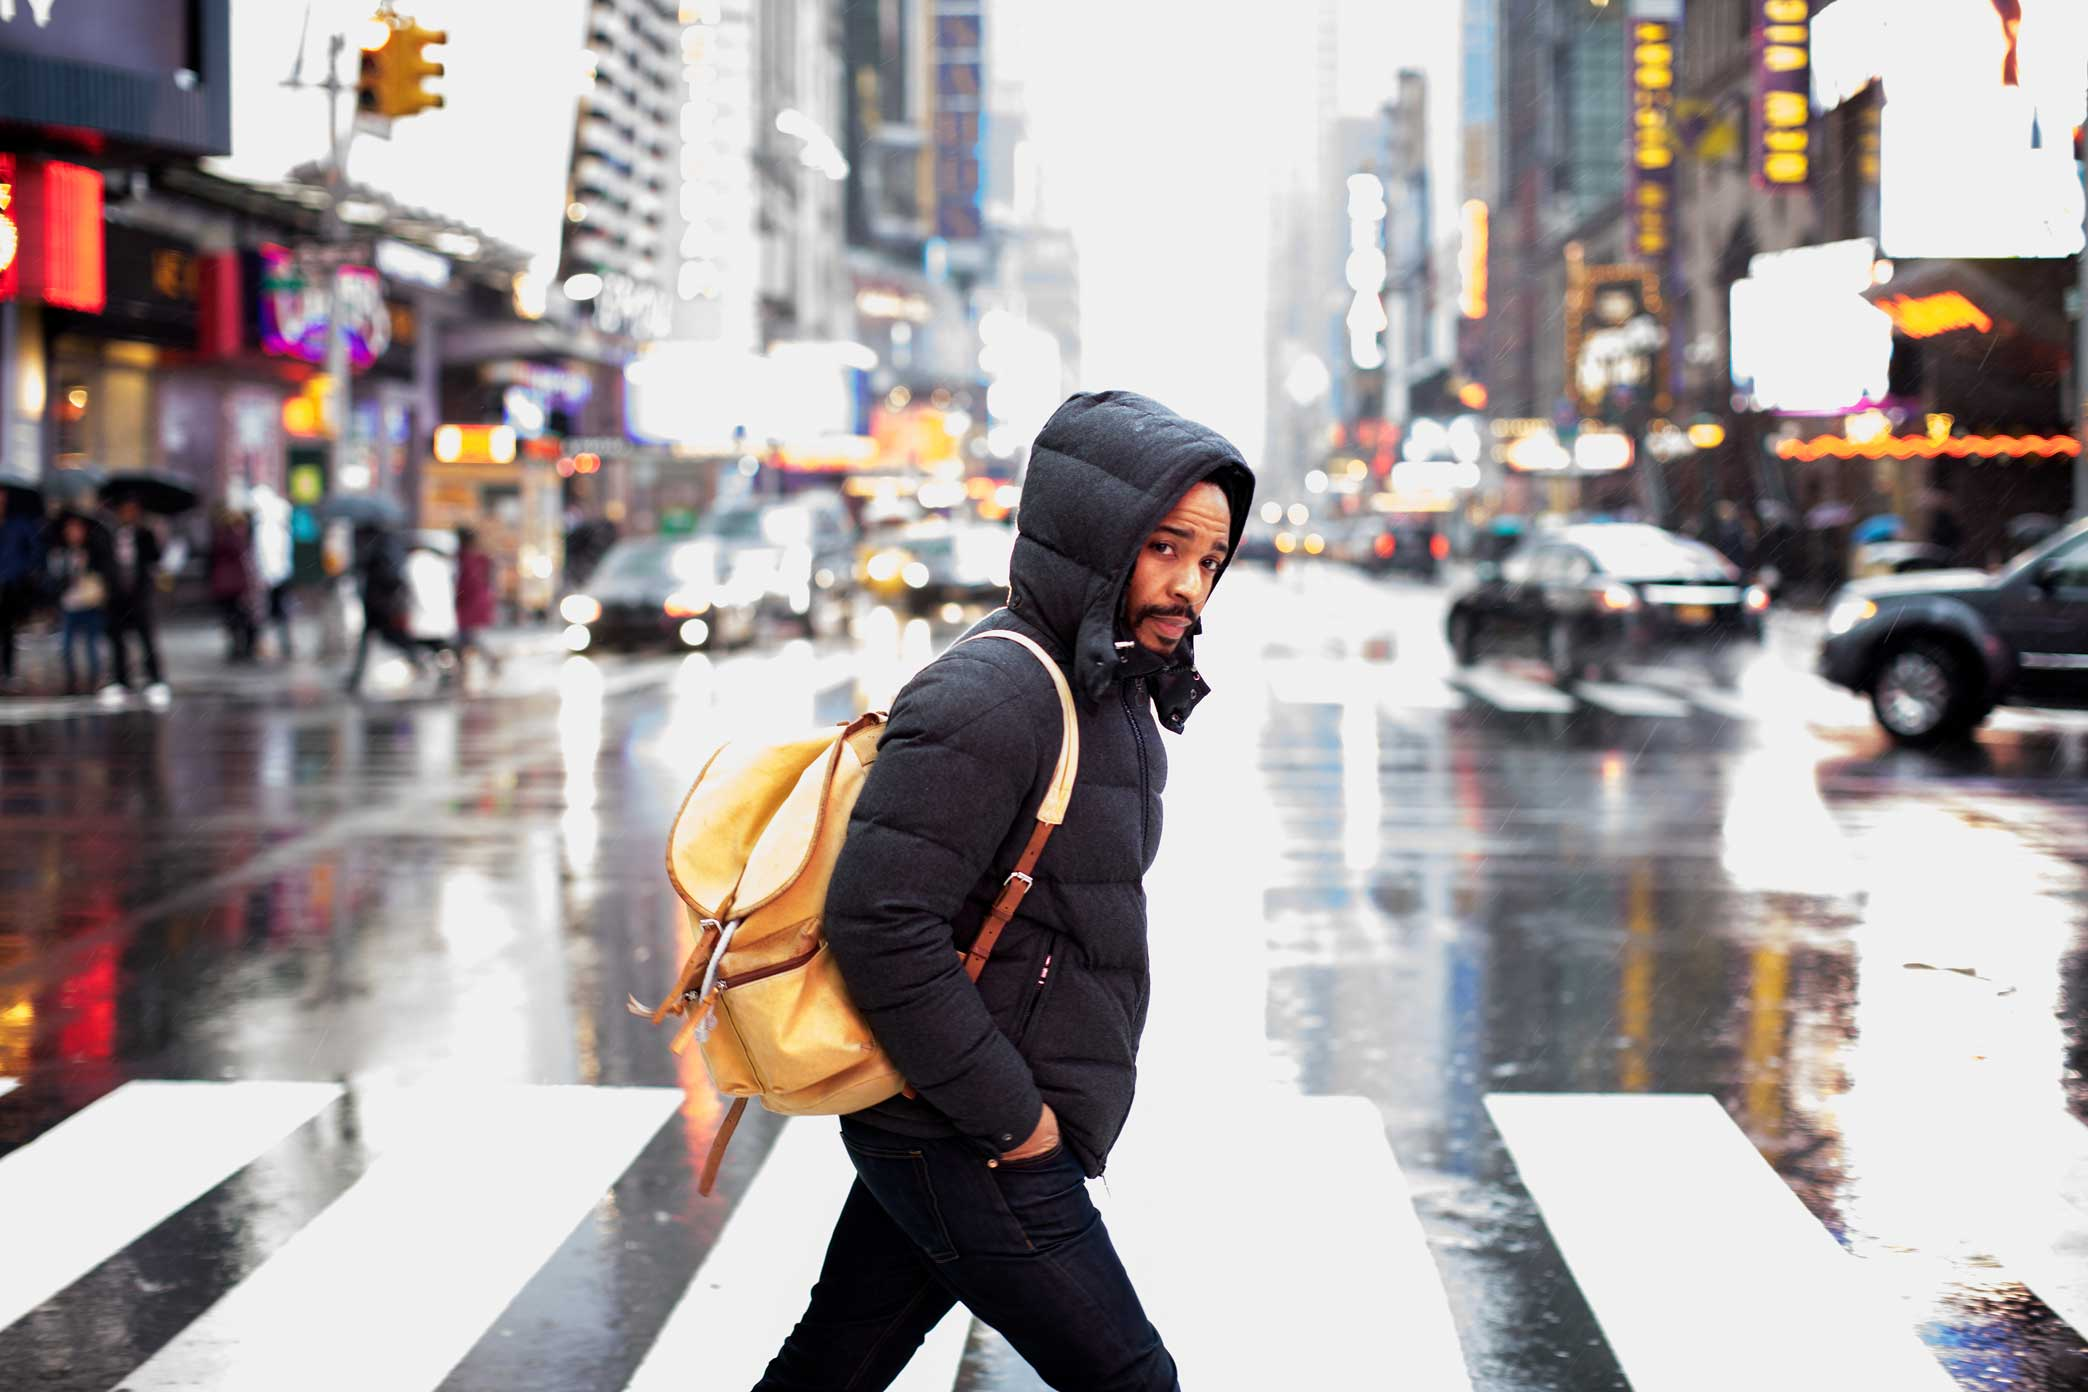 Actor Andre Holland on his way to work in Manhattan. Holland plays the character Youngblood in August Wilson's play Jitney at the Samuel J Friedman Theatre on Broadway.